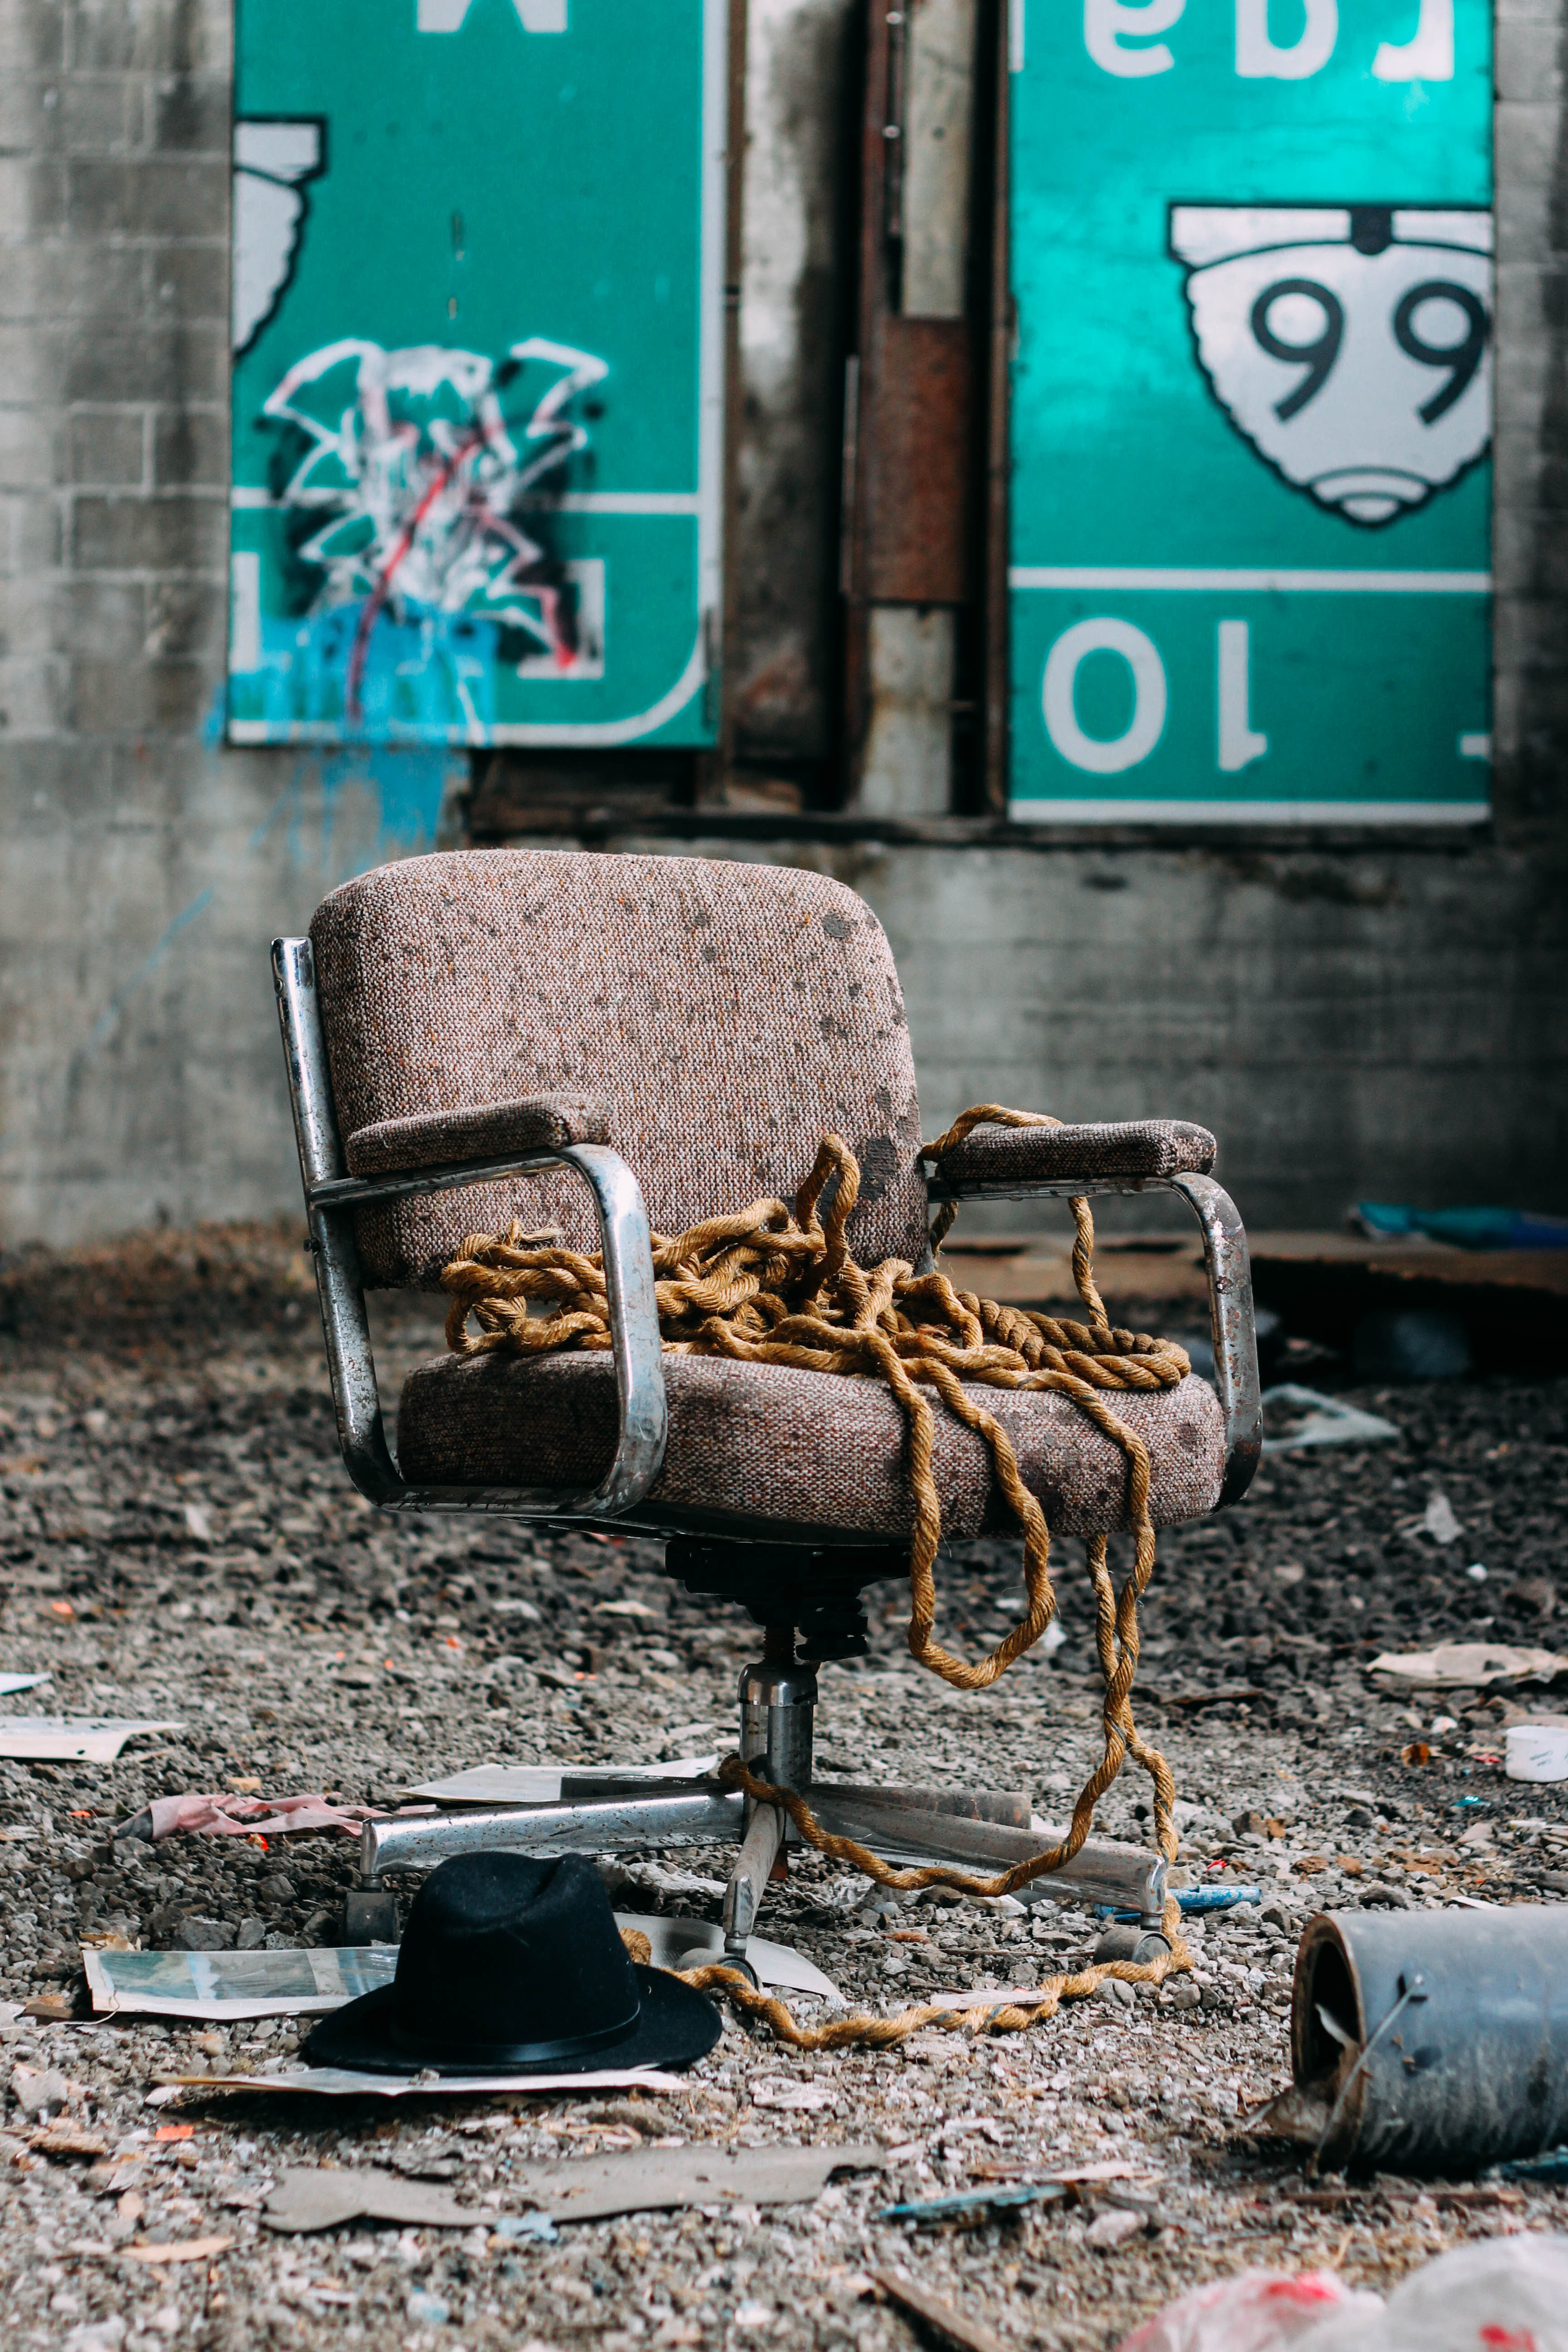 Old chair photo